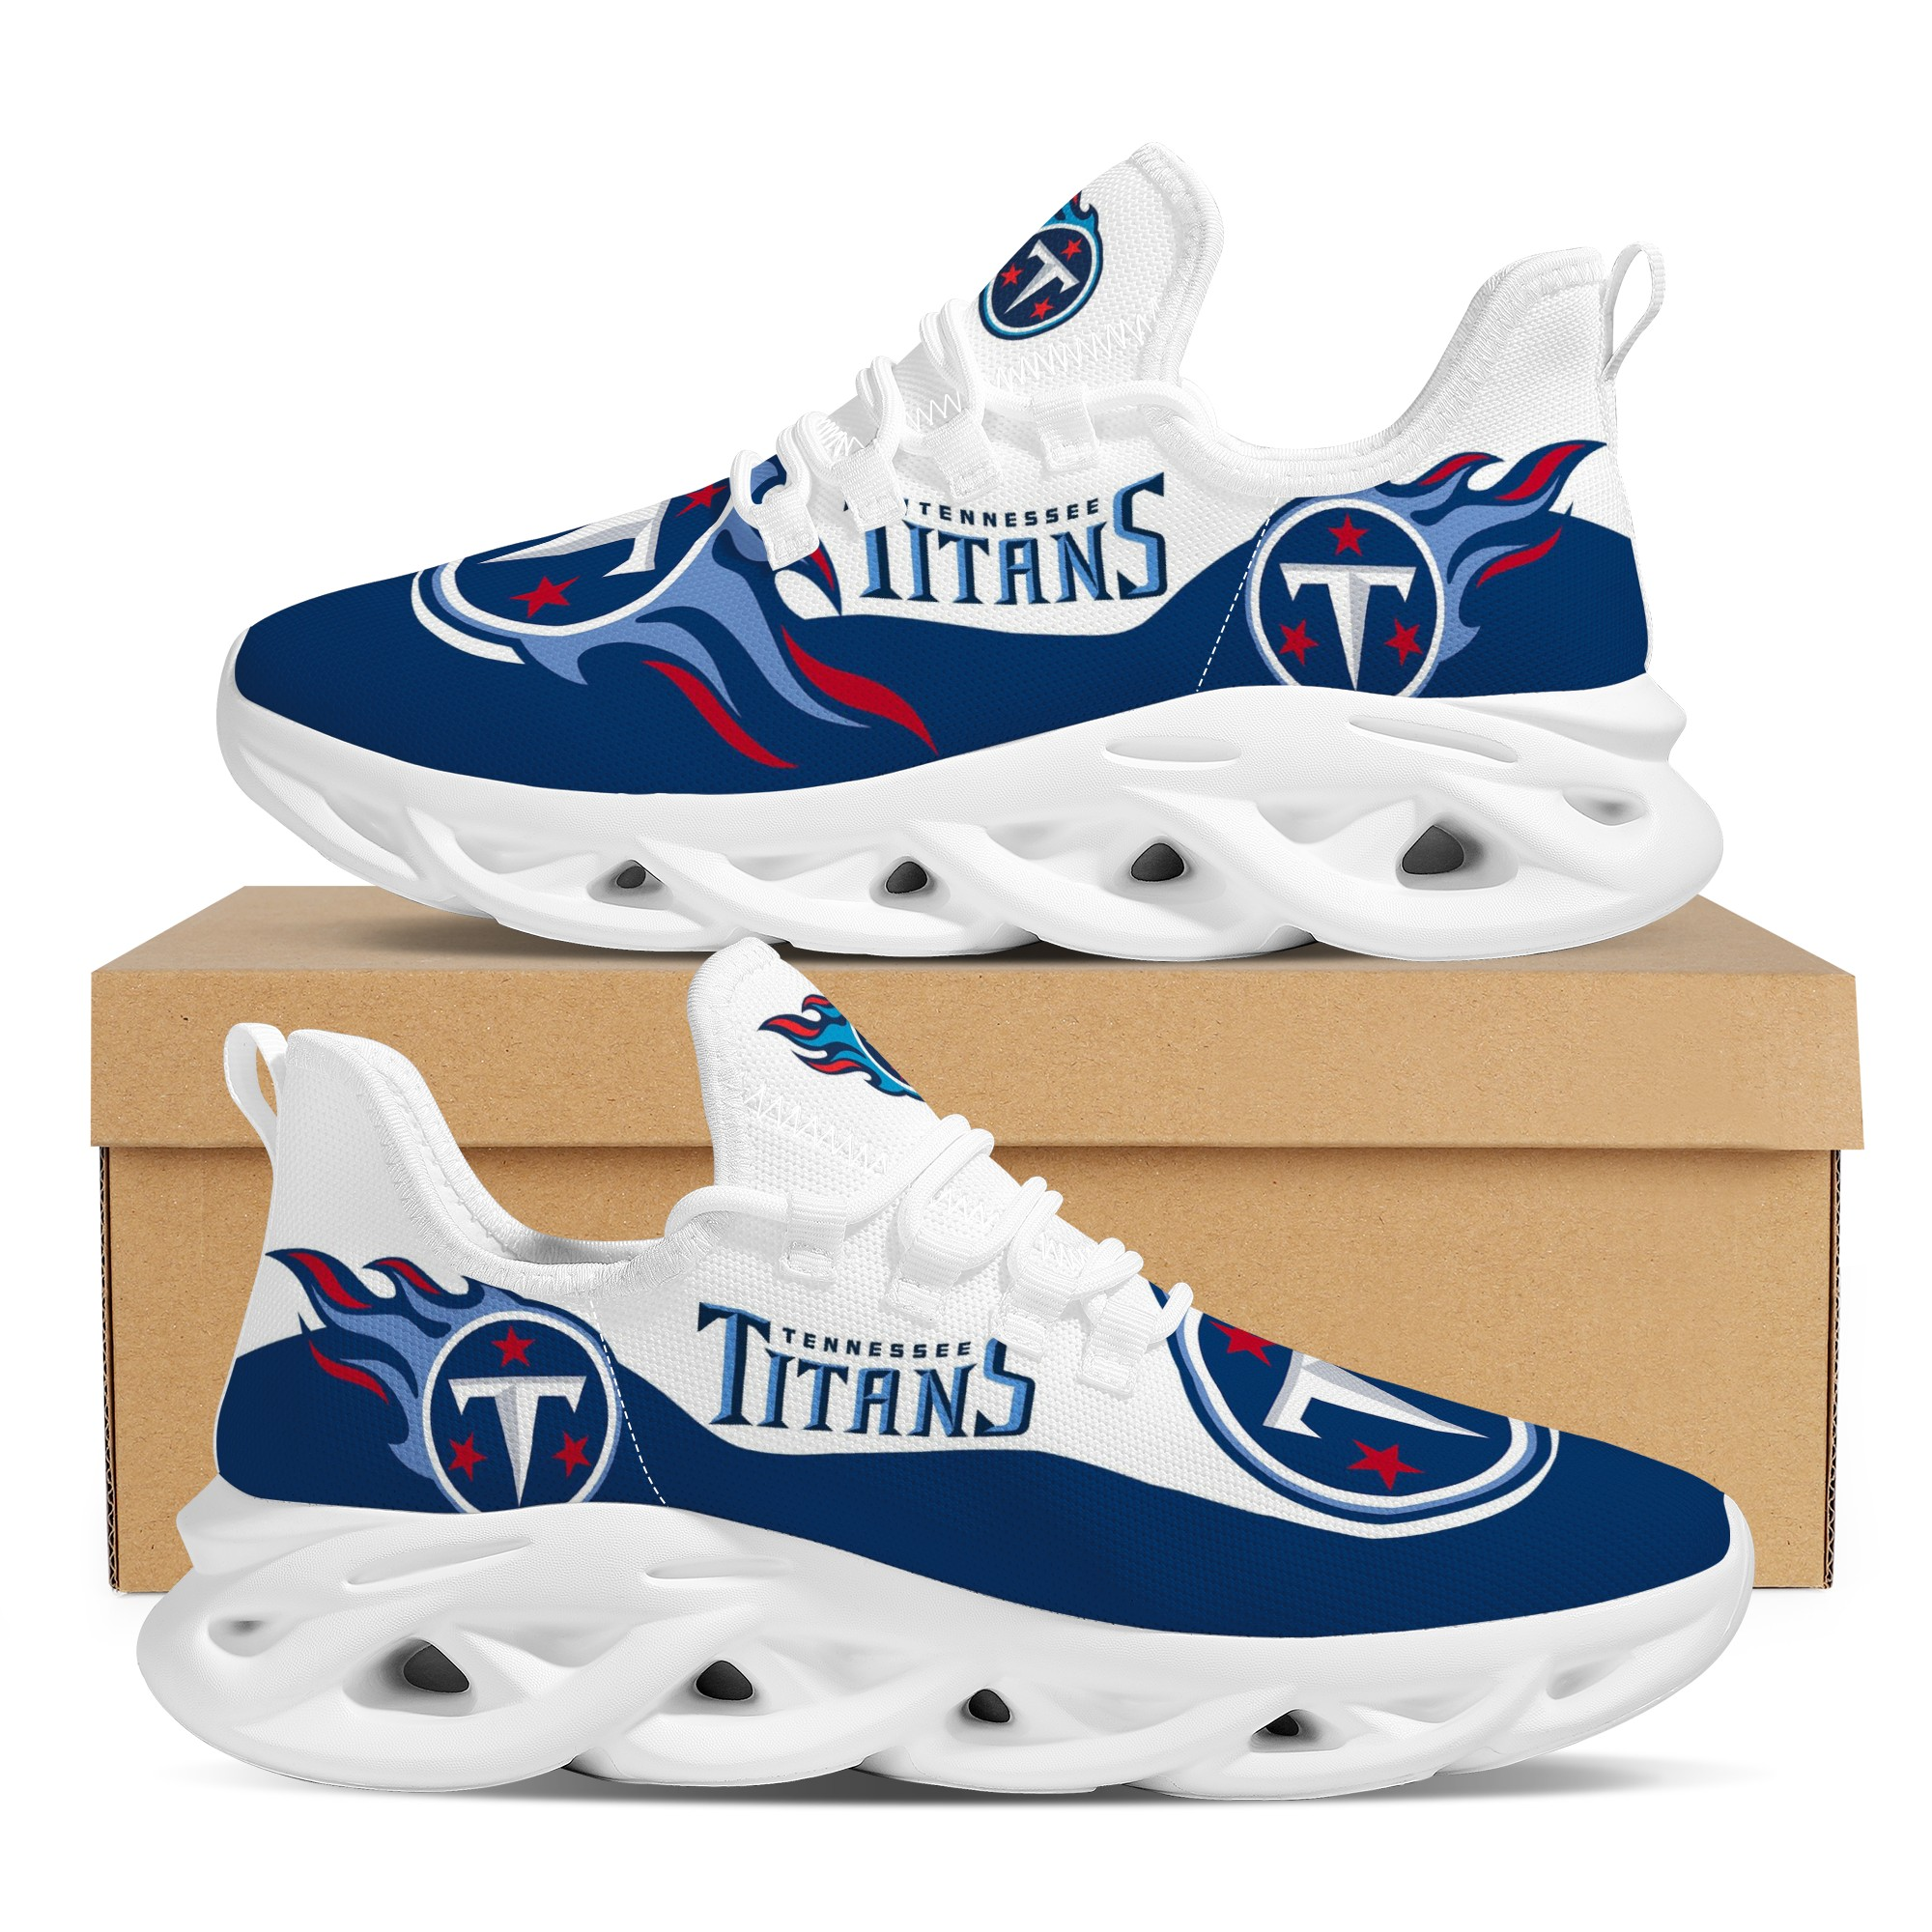 Men's Tennessee Titans Flex Control Sneakers 002